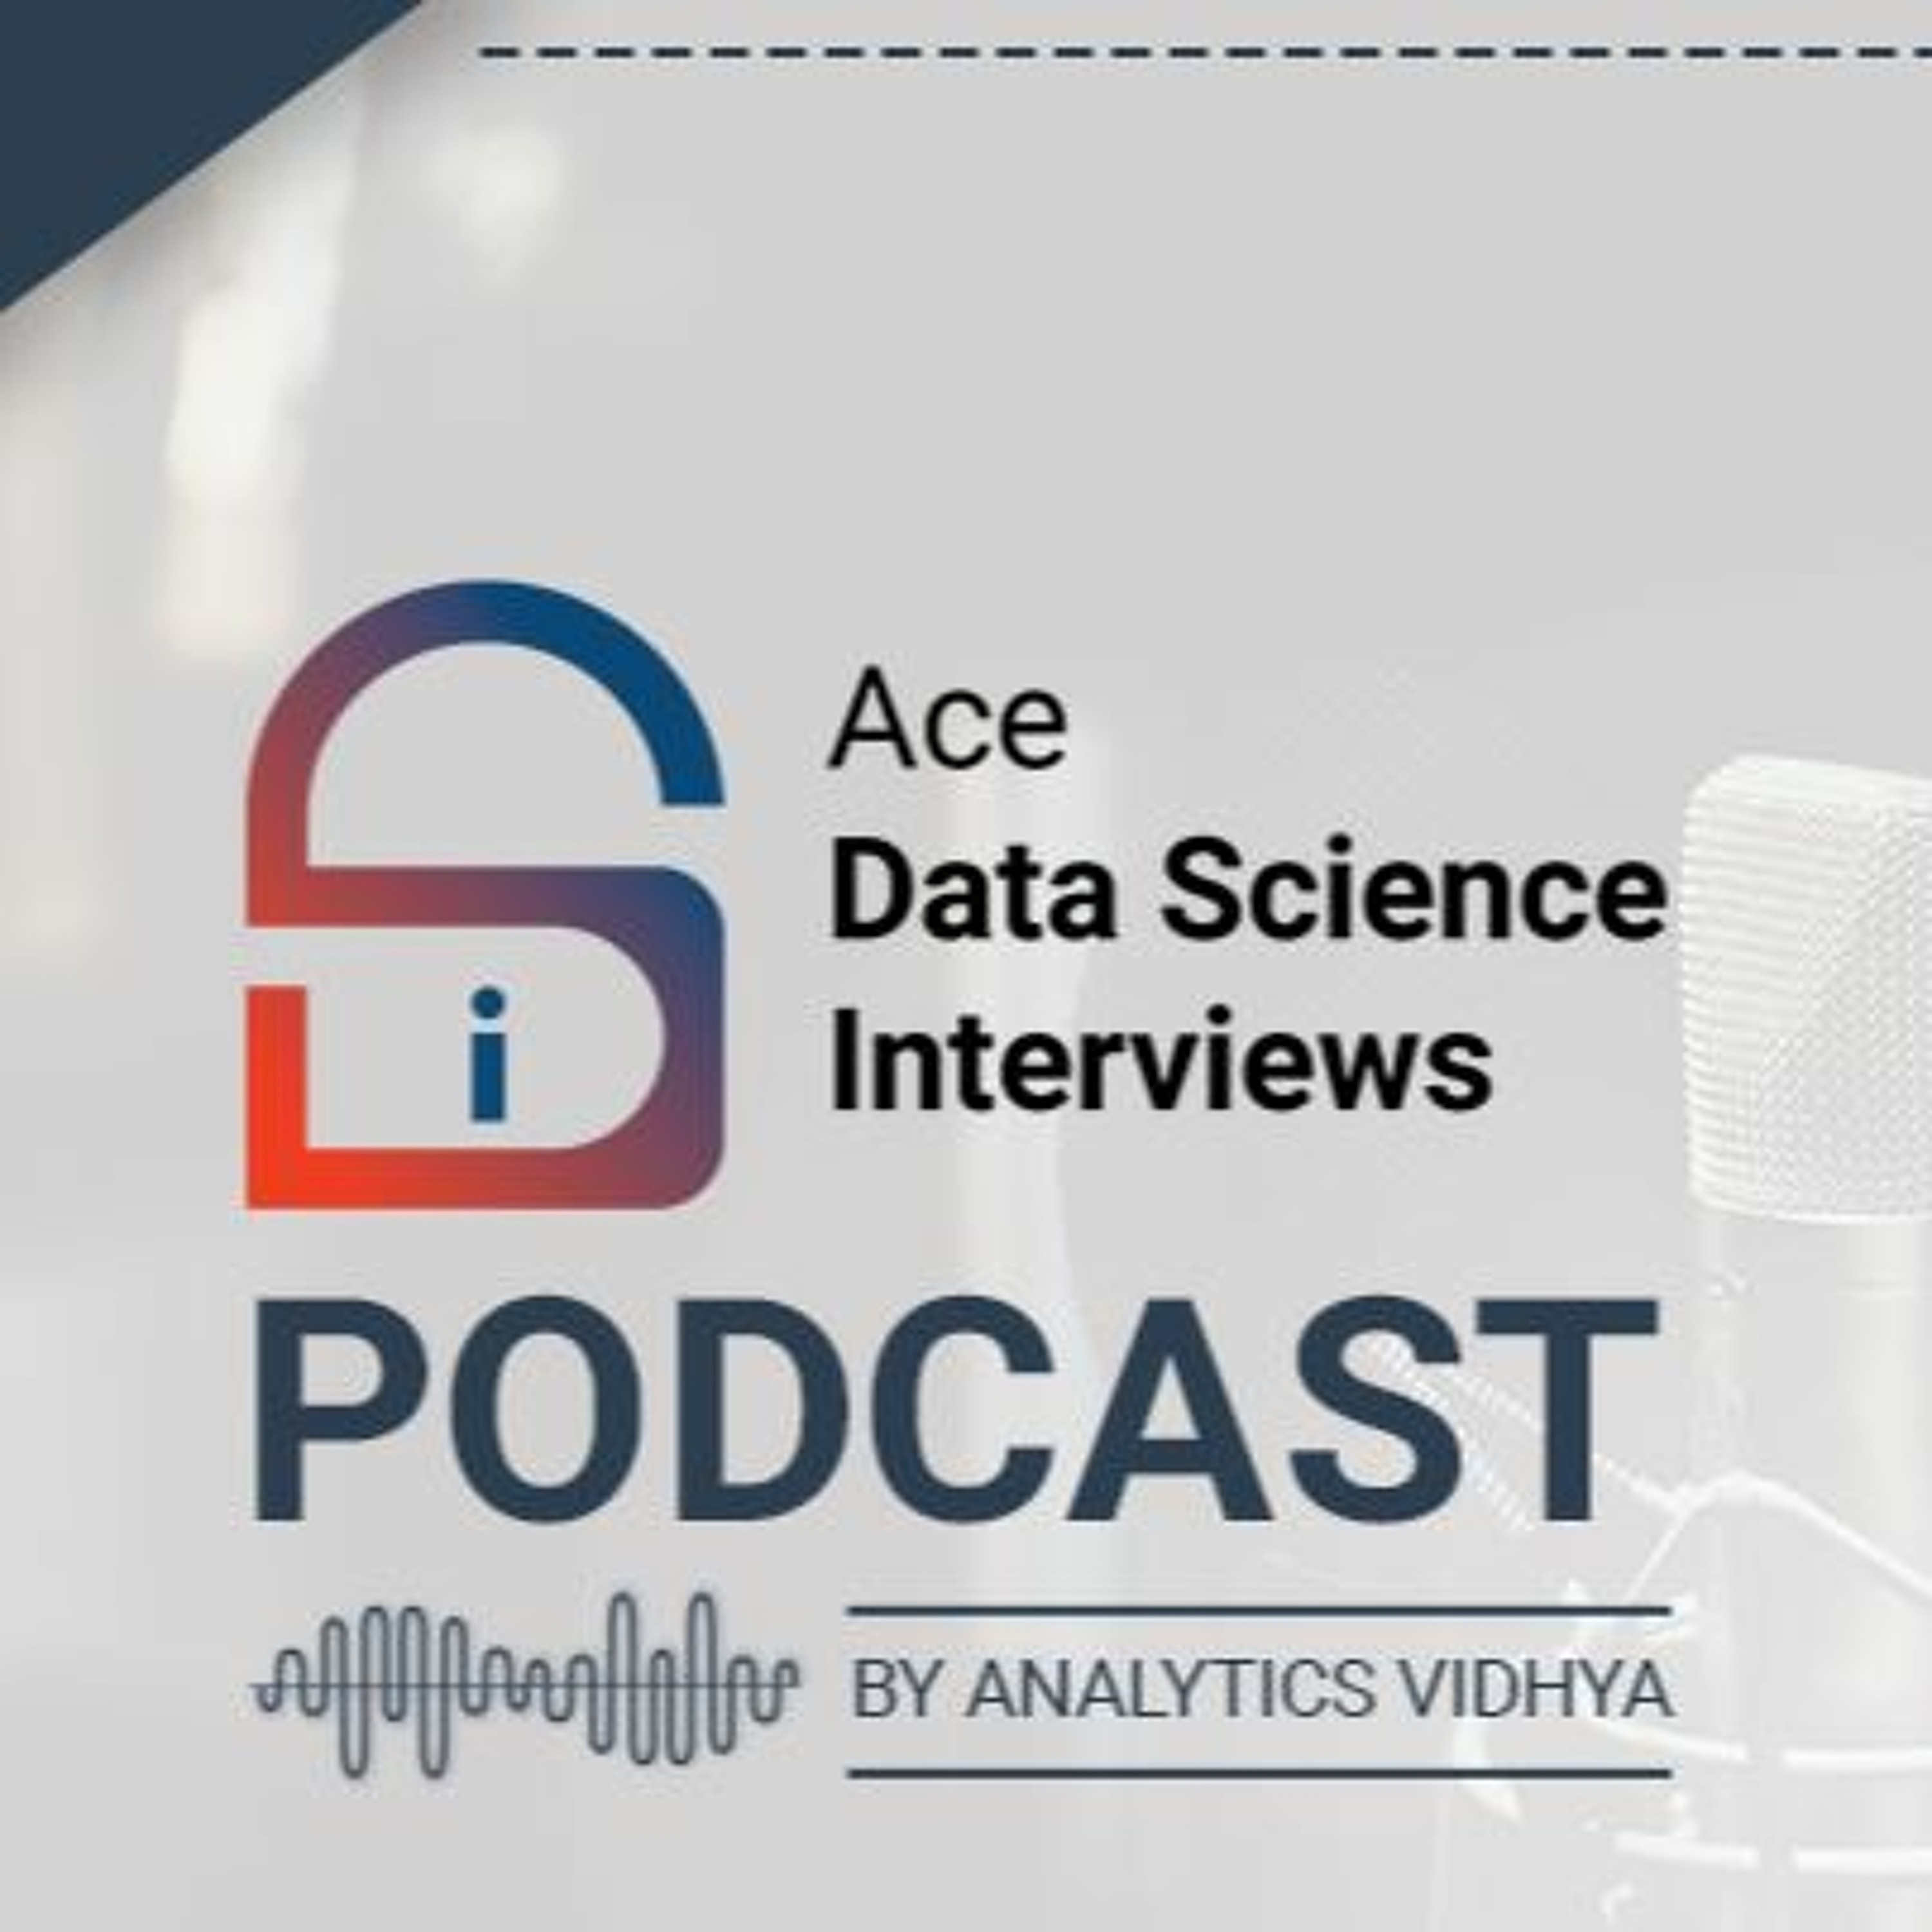 Episode #4: Importance of Structured Thinking & Communication for Data Scientists